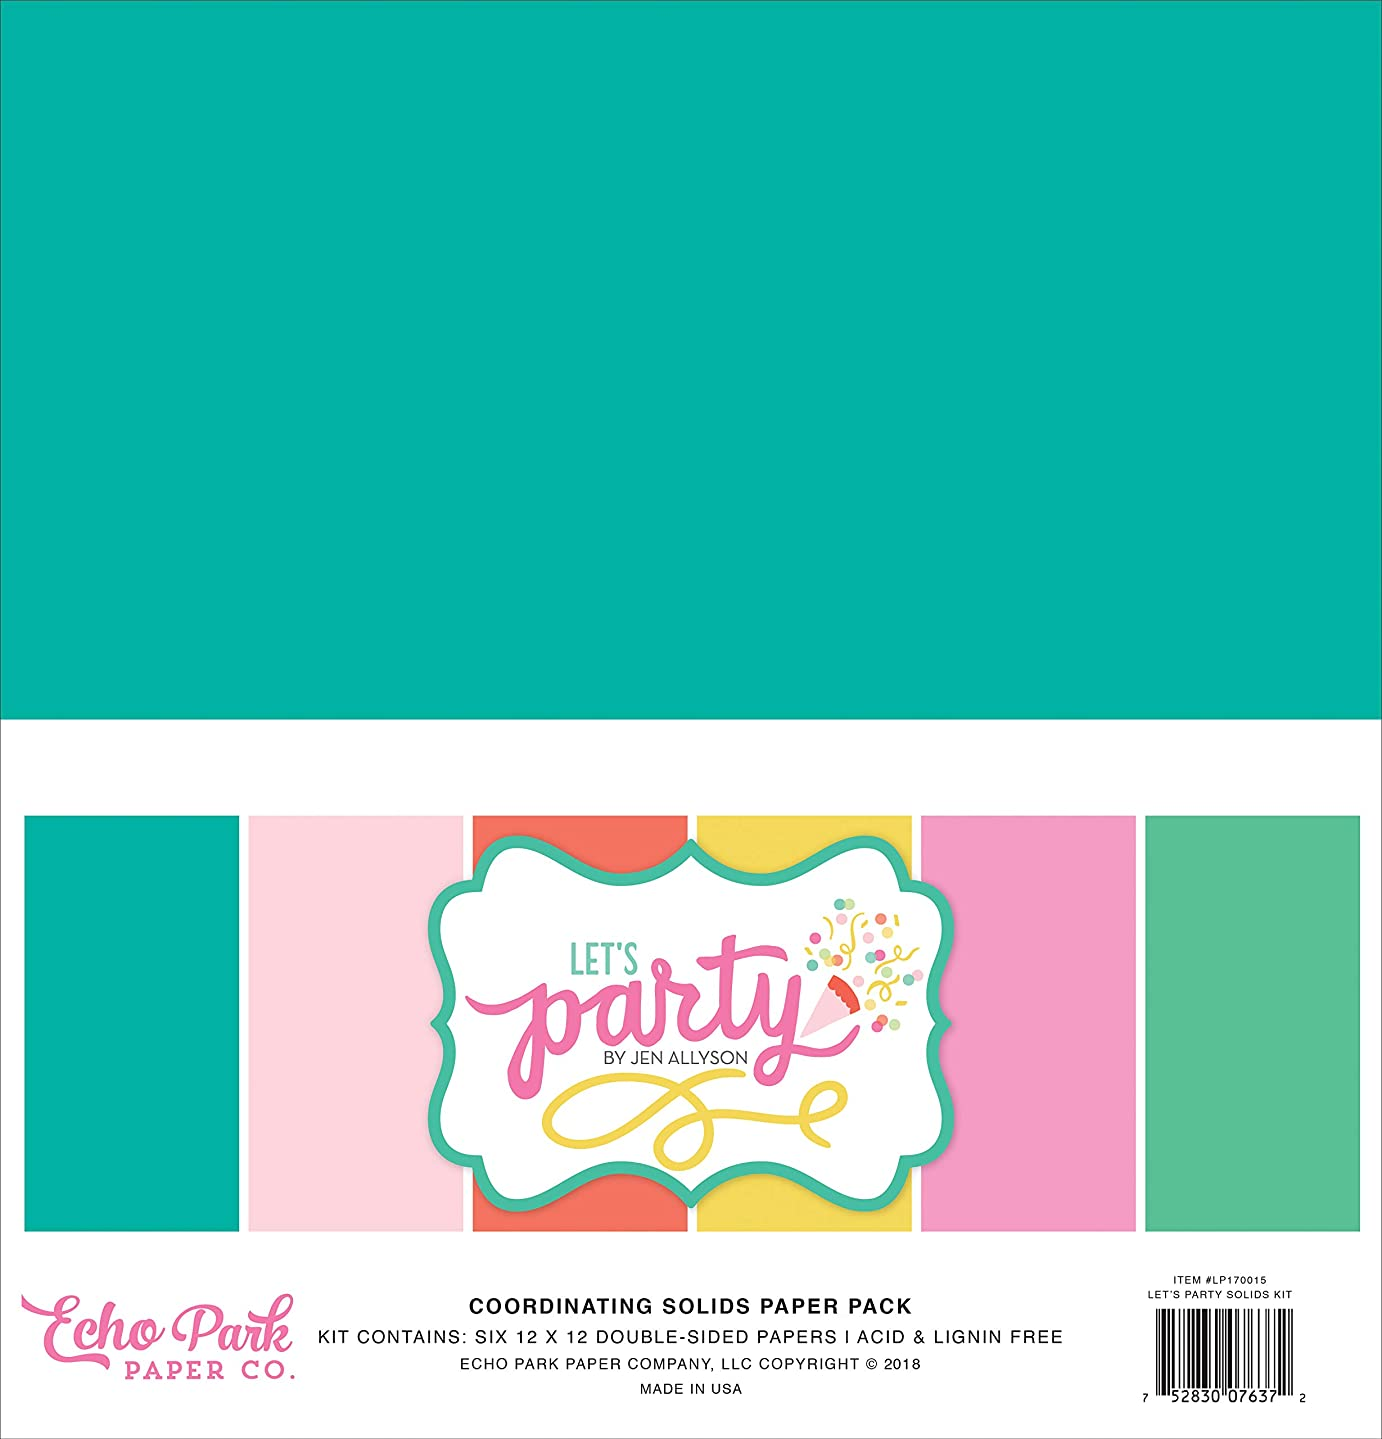 Echo Park Paper Company LP170015 Let's Party Solids Kit Paper, Teal, Pink, Green, Yellow